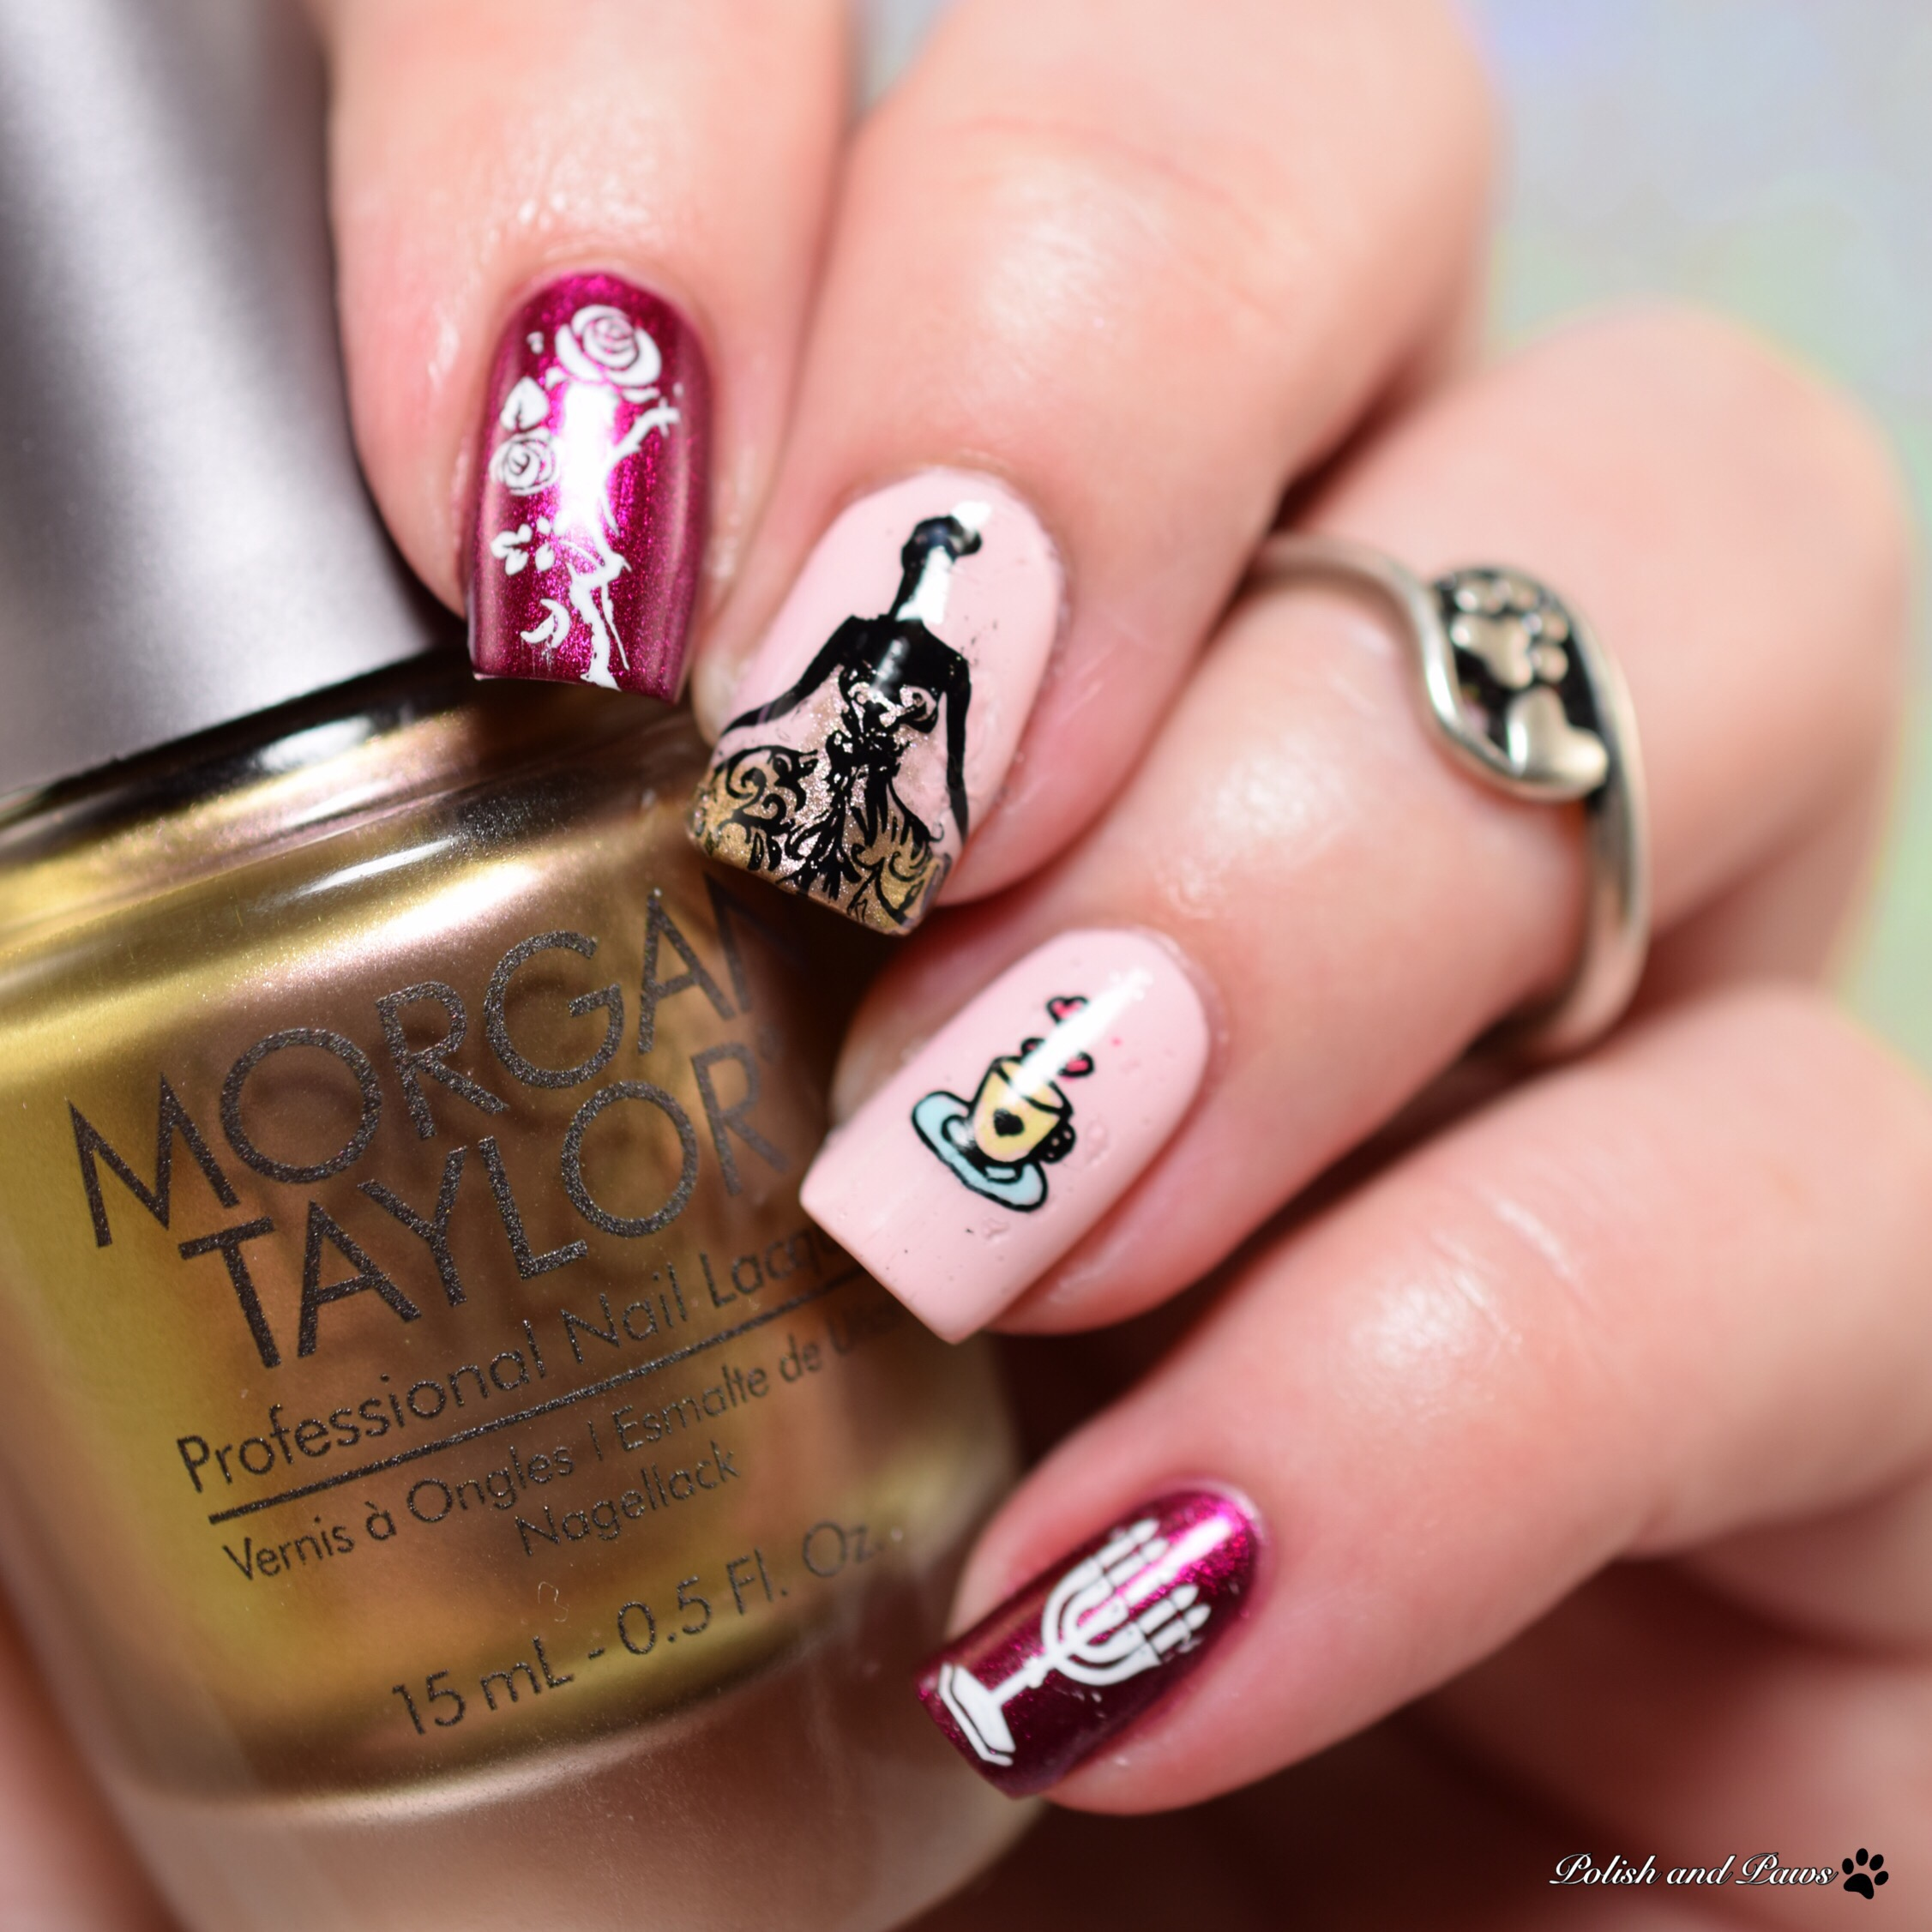 Man Taylor Beauty And The Beast Inspired Nail Art